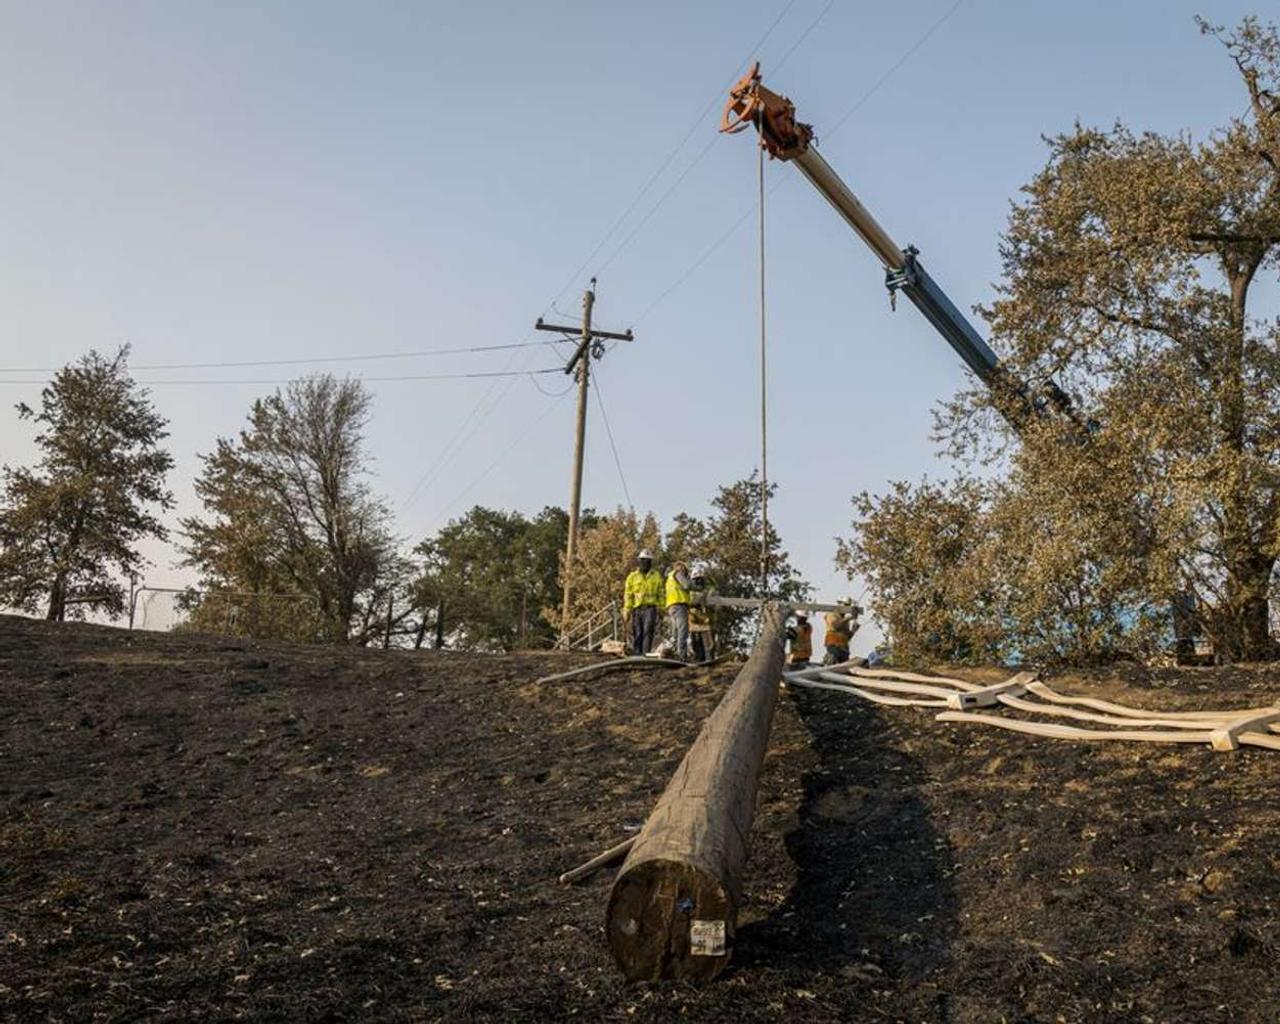 California has poured $ 536 million into fire protection amid drought crises